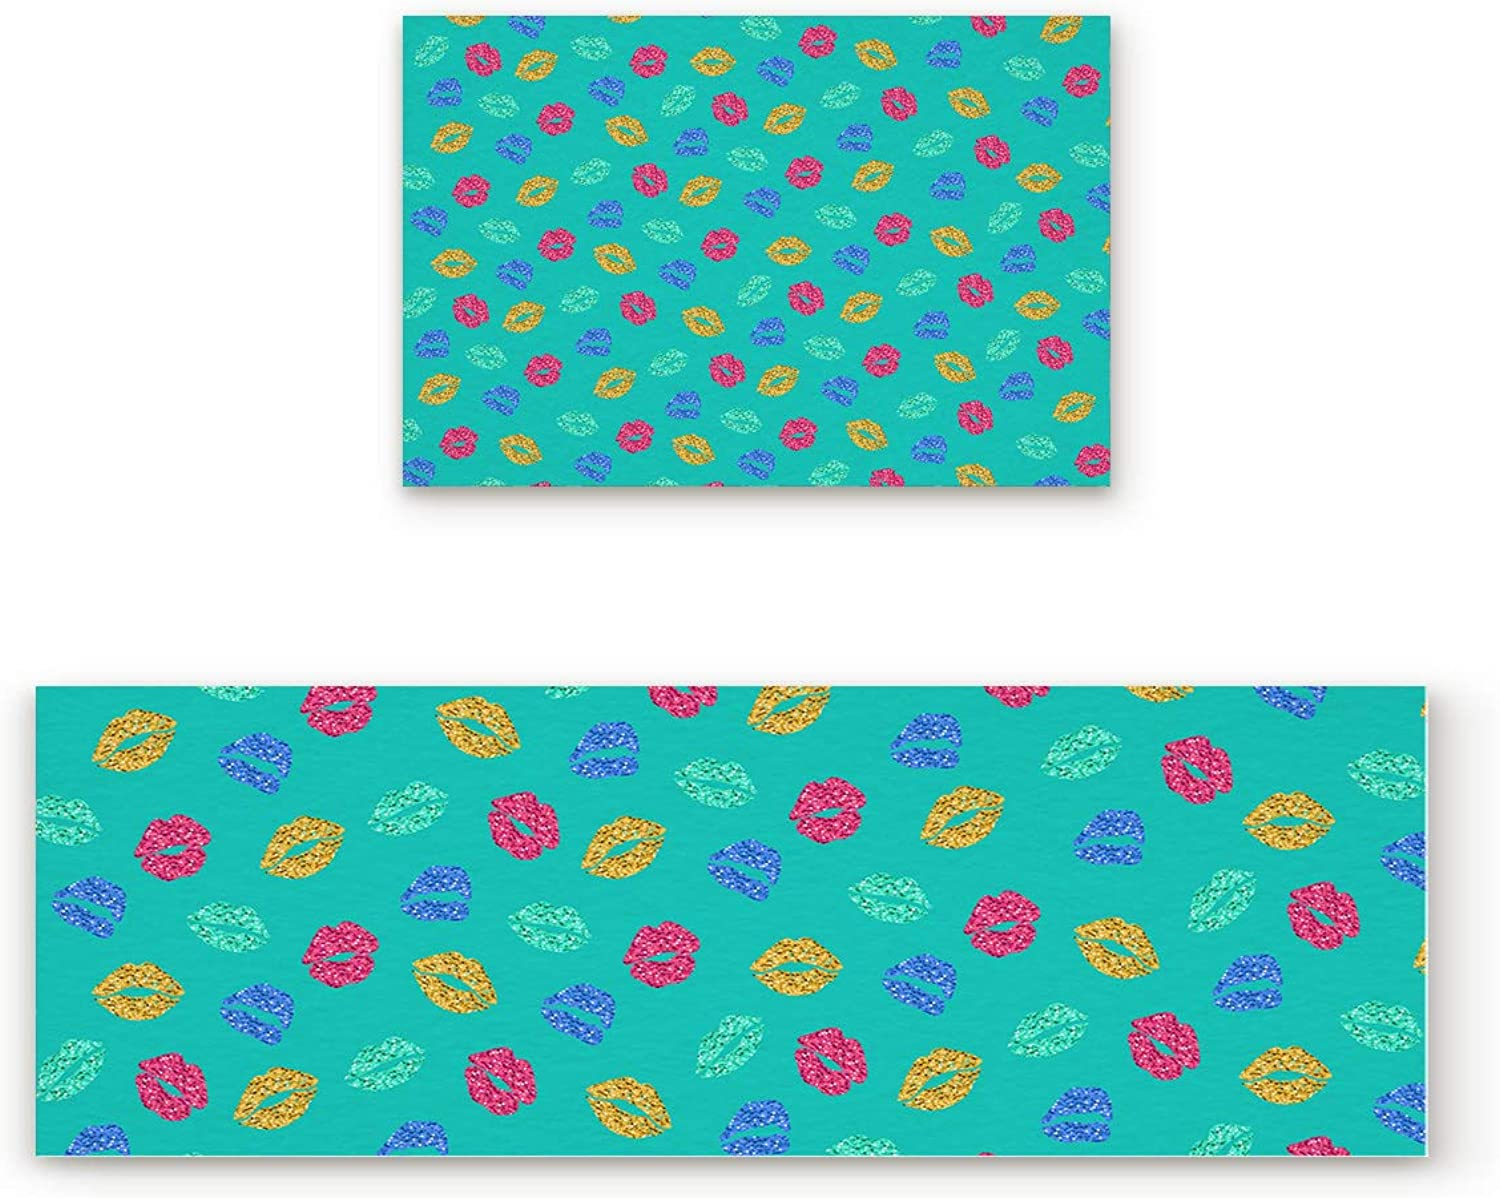 Fantasy Star Kitchen Rugs Sets 2 Piece Floor Mats Teal Background colorful Sexy Lips Doormat Non-Slip Rubber Backing Area Rugs Washable Carpet Inside Door Mat Pad Sets (19.7  x 31.5 +19.7  x 63 )